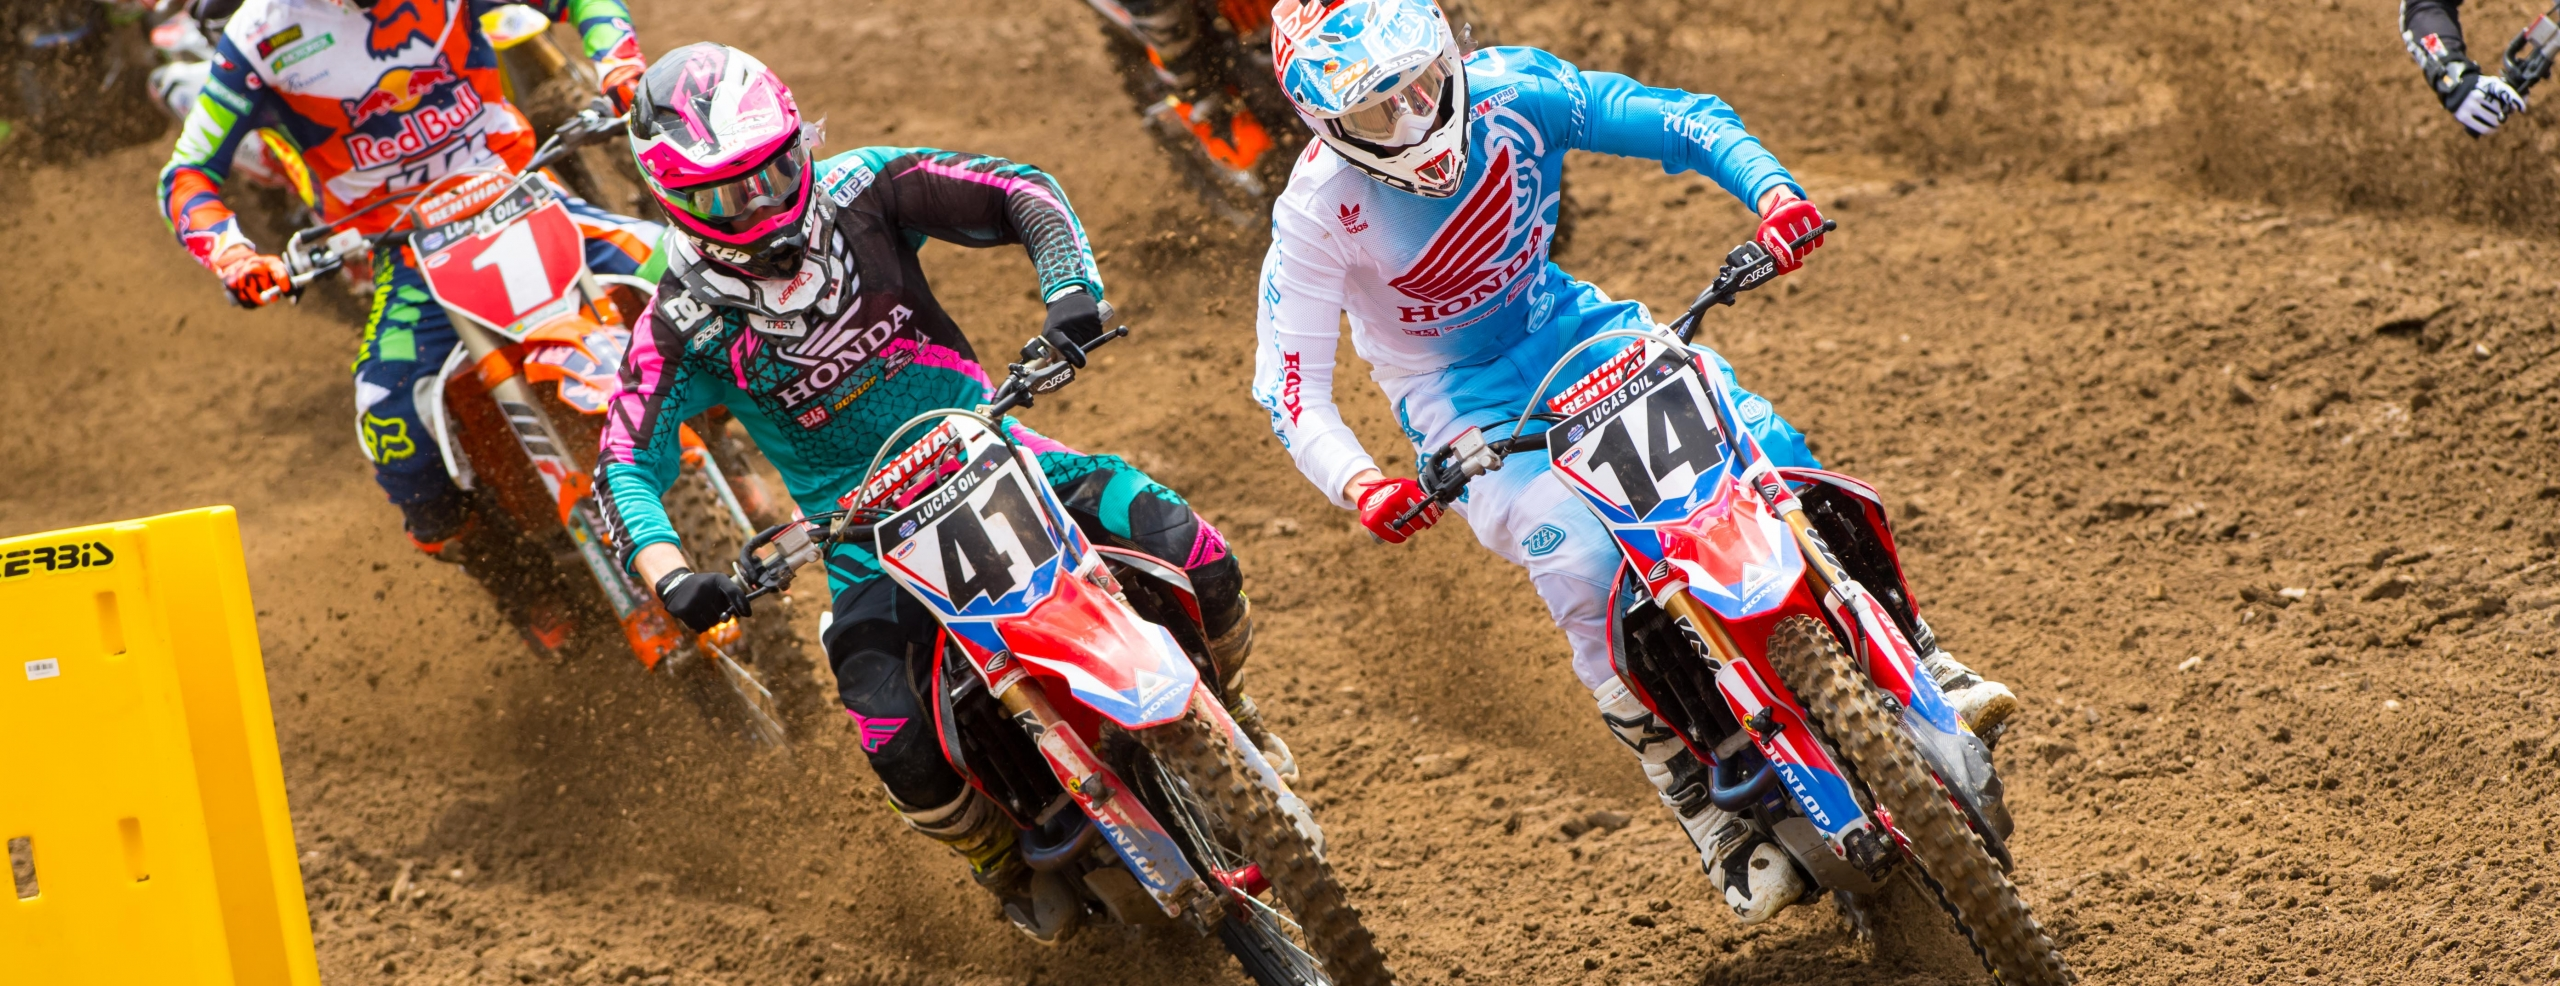 Strong Showings for Canard, Seely at Hangtown Opener